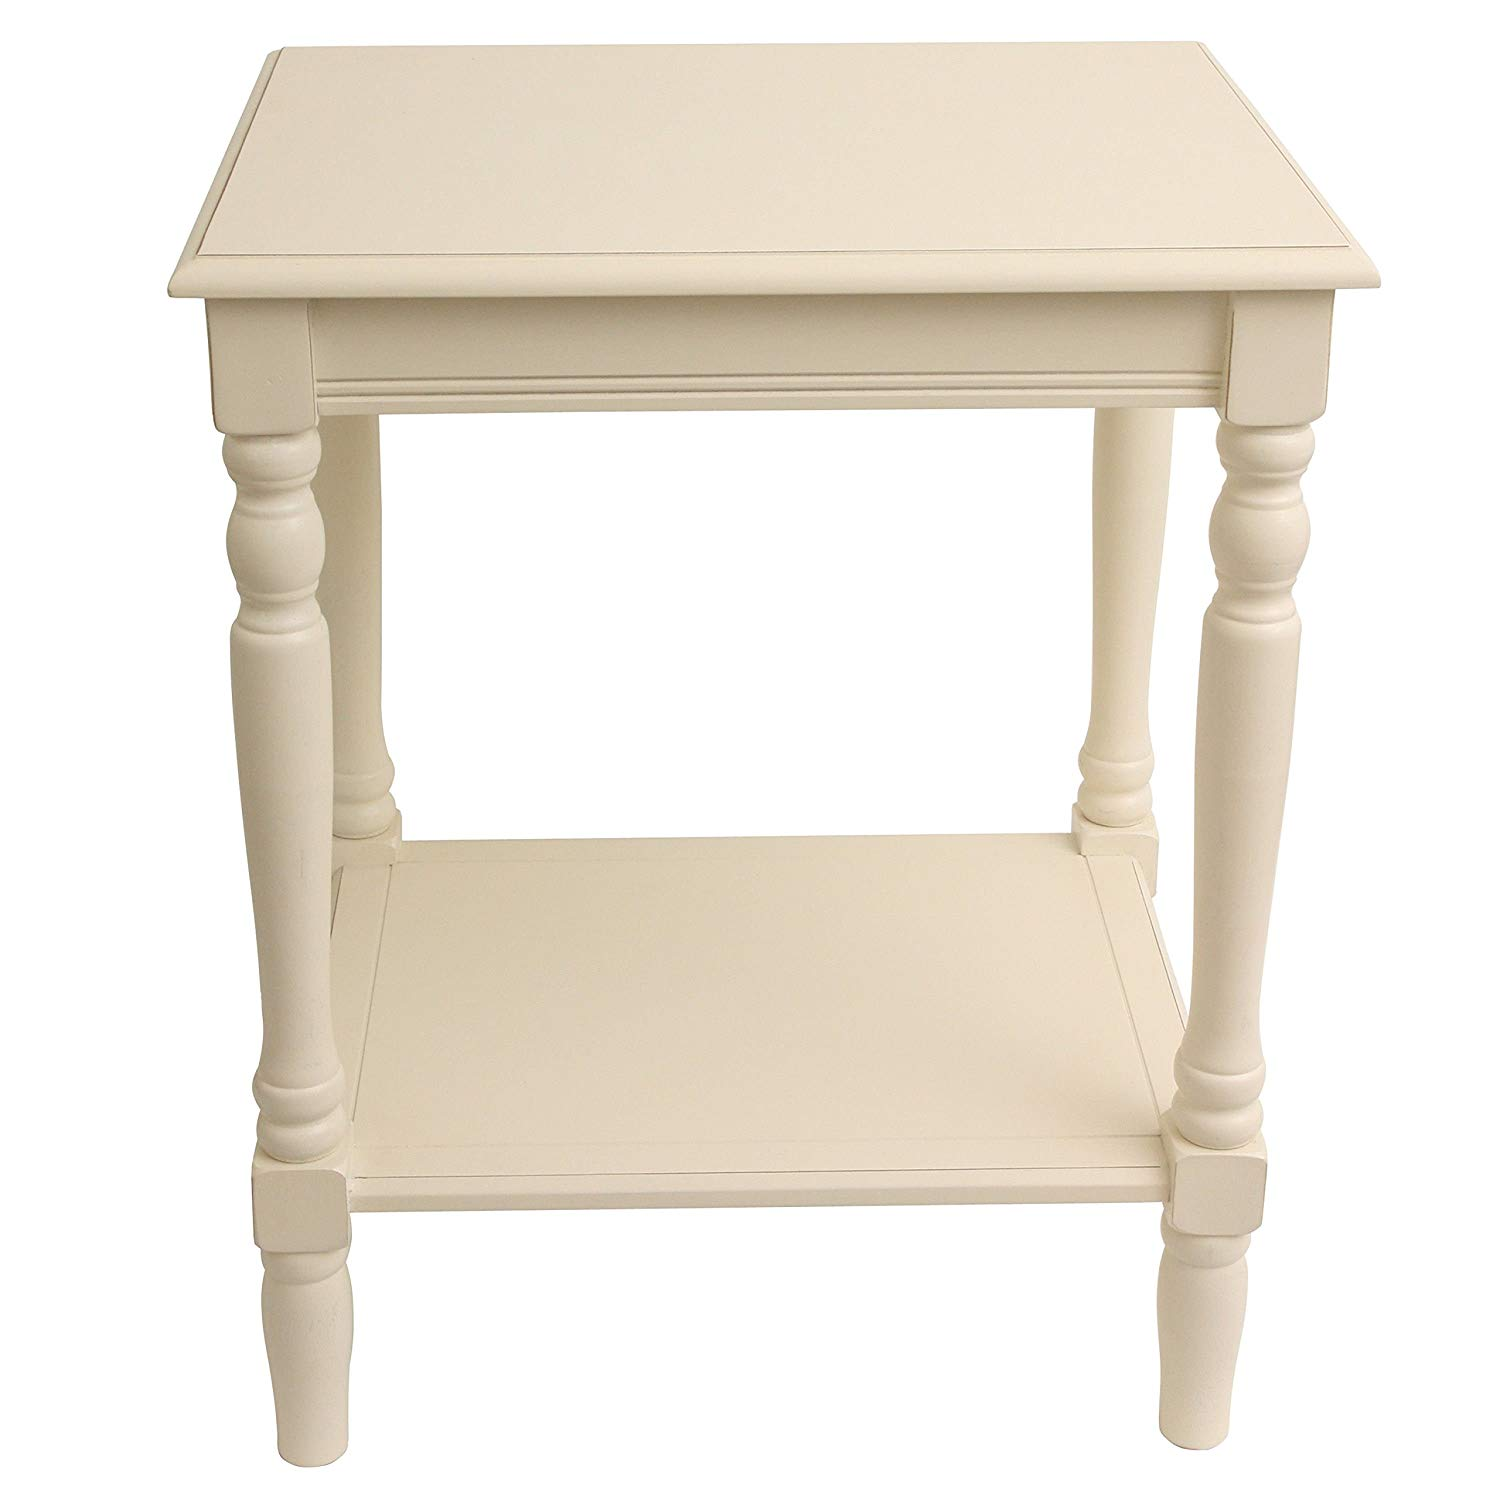 painted antique white end accent table with bottom shelf kitchen dining concrete look quilted runners free patterns winsome drawer lucite and glass coffee cover set bedside